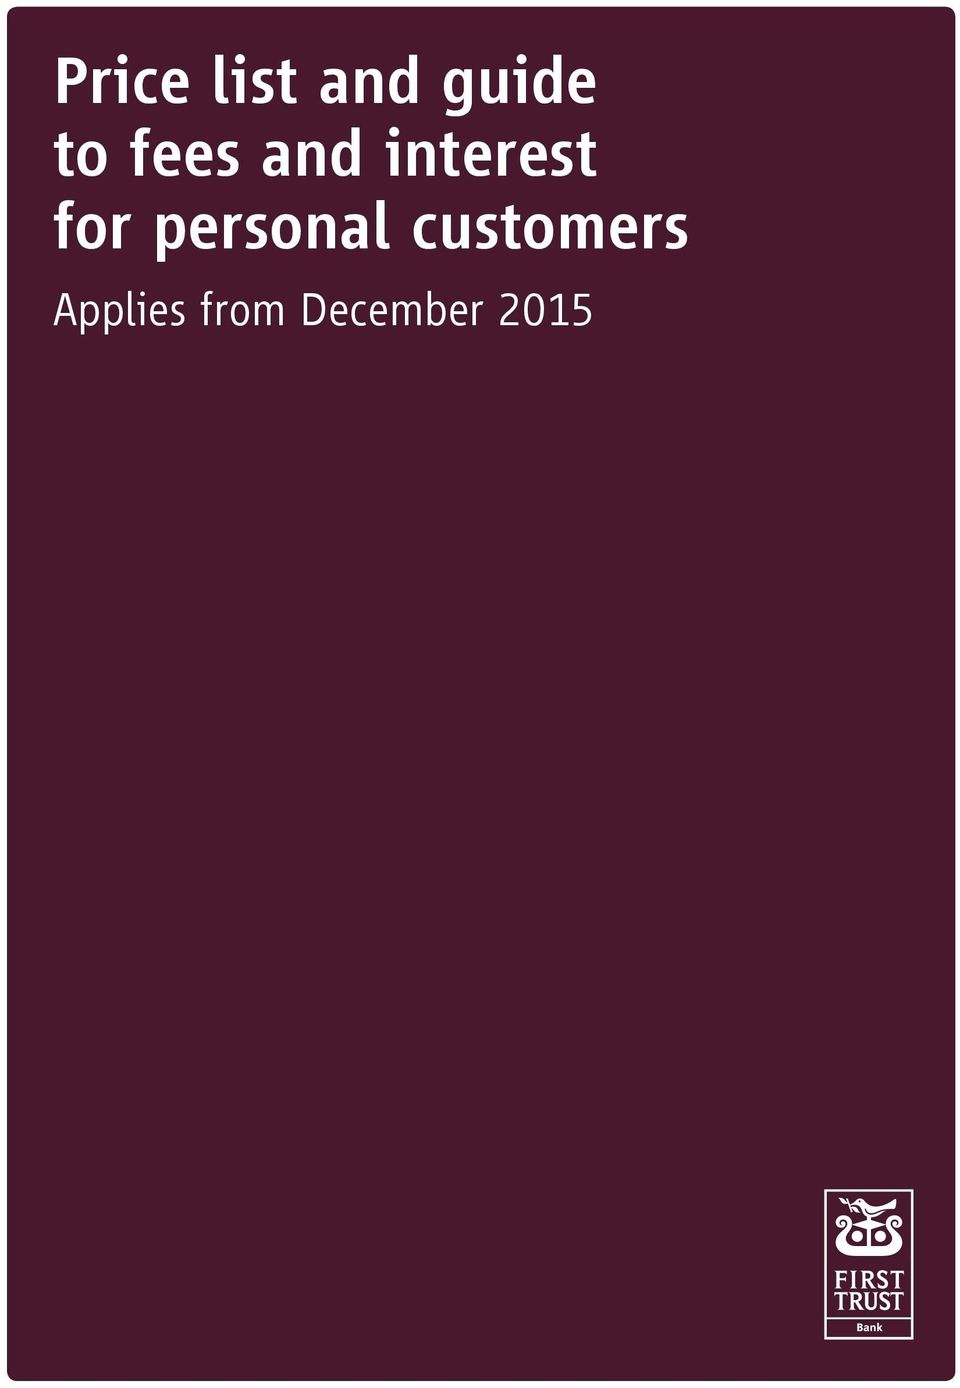 for personal customers